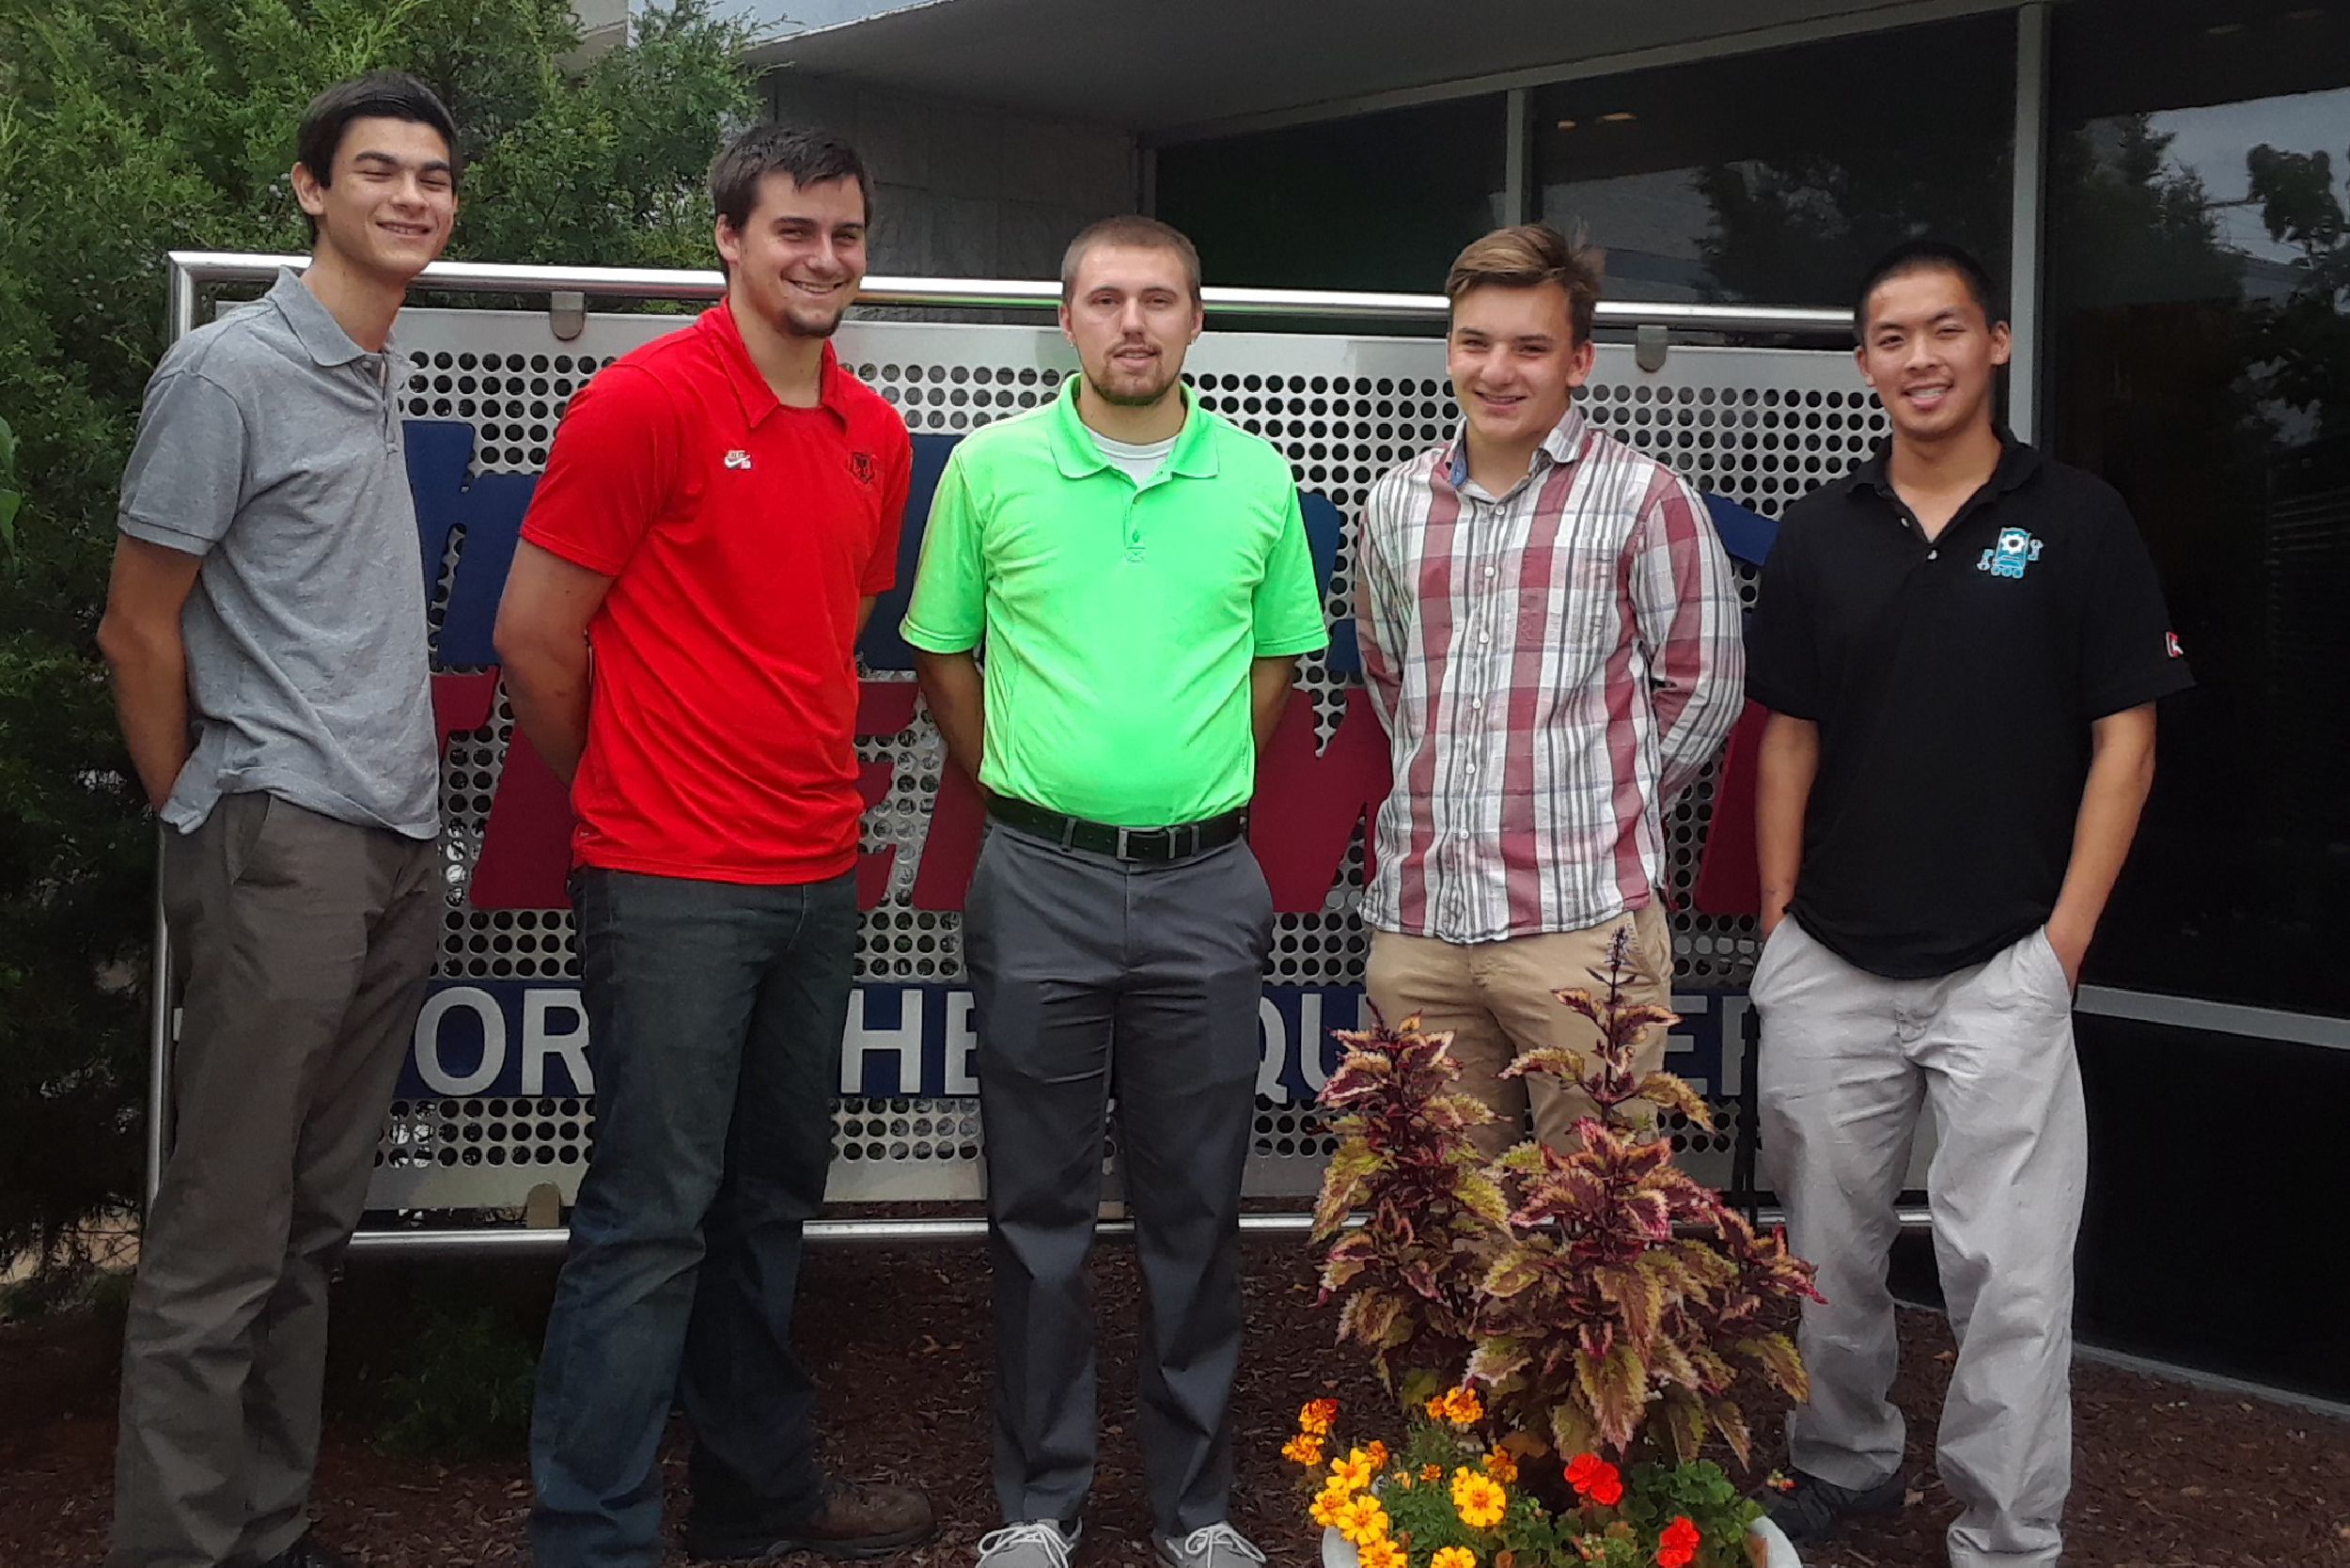 2018 Hydro-Thermal interns: Andrew Kempen (freshman, MSOE and recent Waukesha South High School grad), Aaron Bauer (senior, UW-Platteville), Mike Johrendt (recent grad, UW Oshkosh), Hanson Zaiser (Senior, Brookfield Academy), and Kelly Chen (senior, UW-Milwaukee).